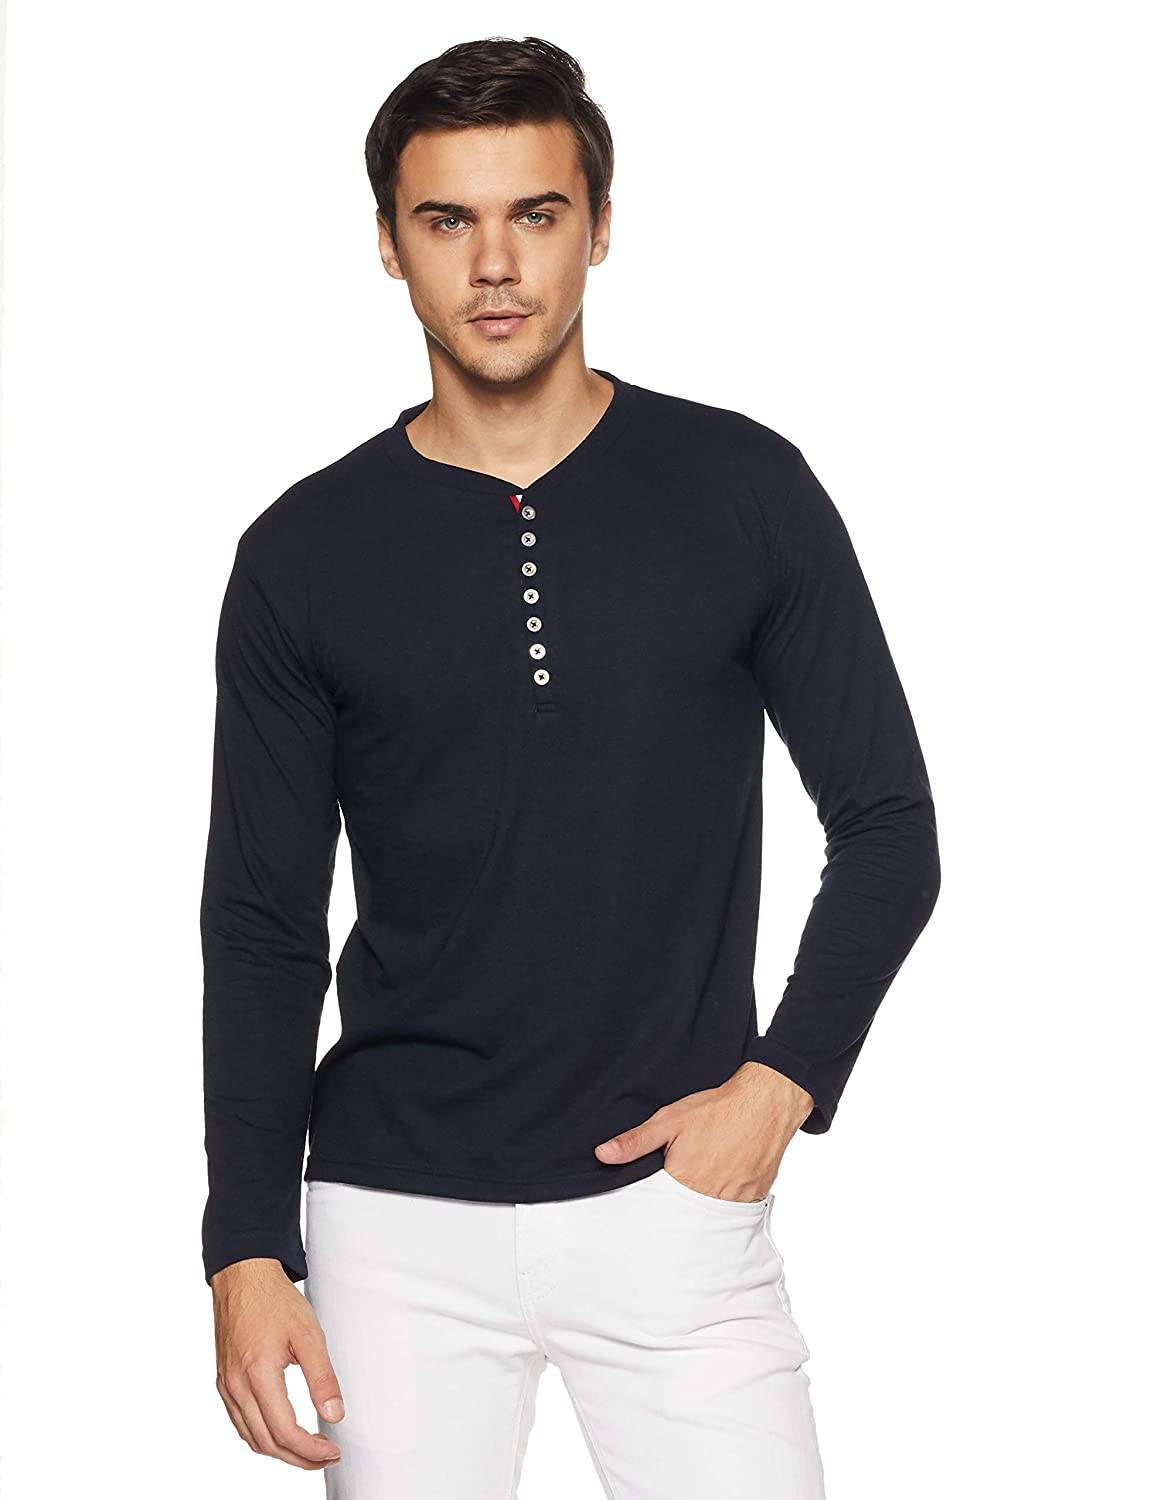 832a69103b TSX Men s Cotton Henley T-Shirt  Amazon.in  Clothing   Accessories